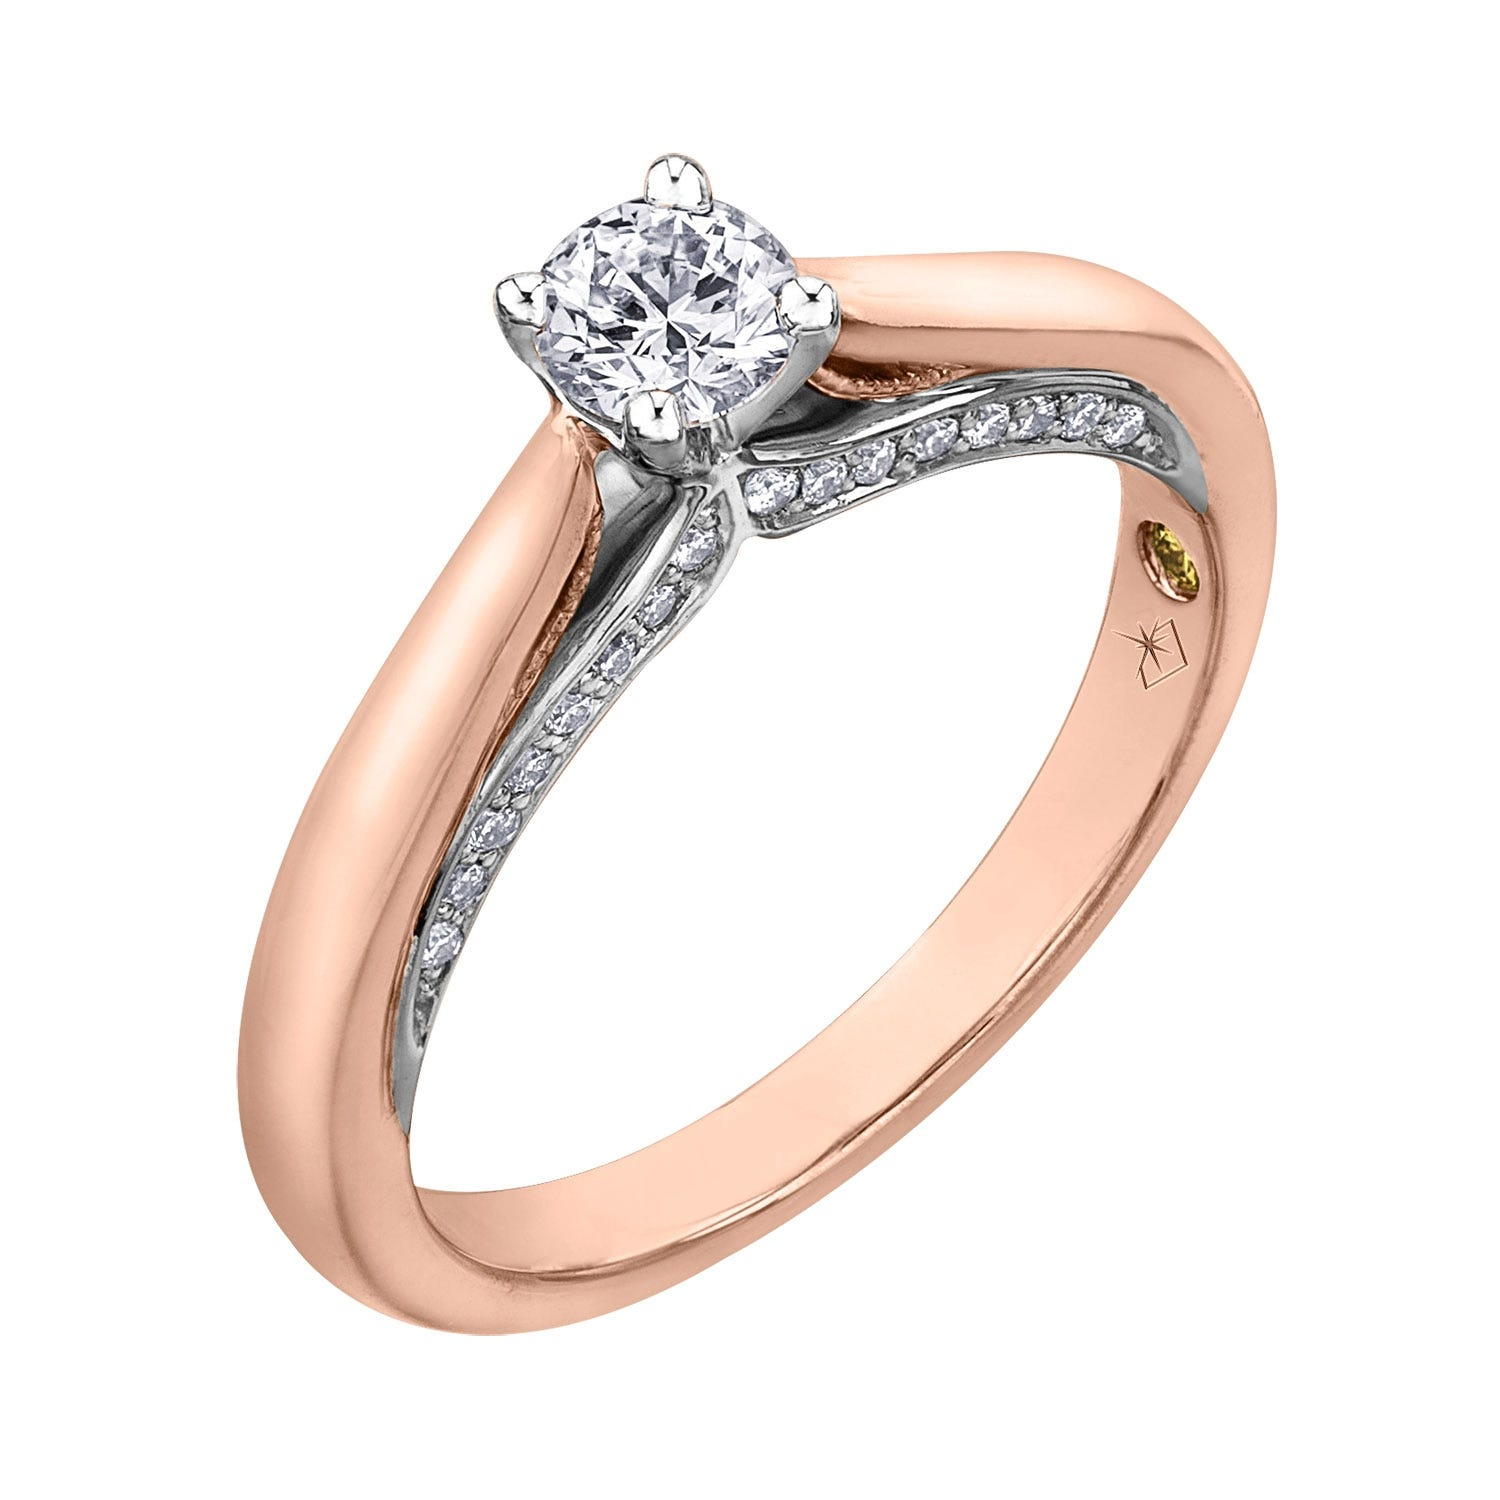 Northern Star Special Order 0.55ct Diamond 18ct Rose Gold Sides Ring